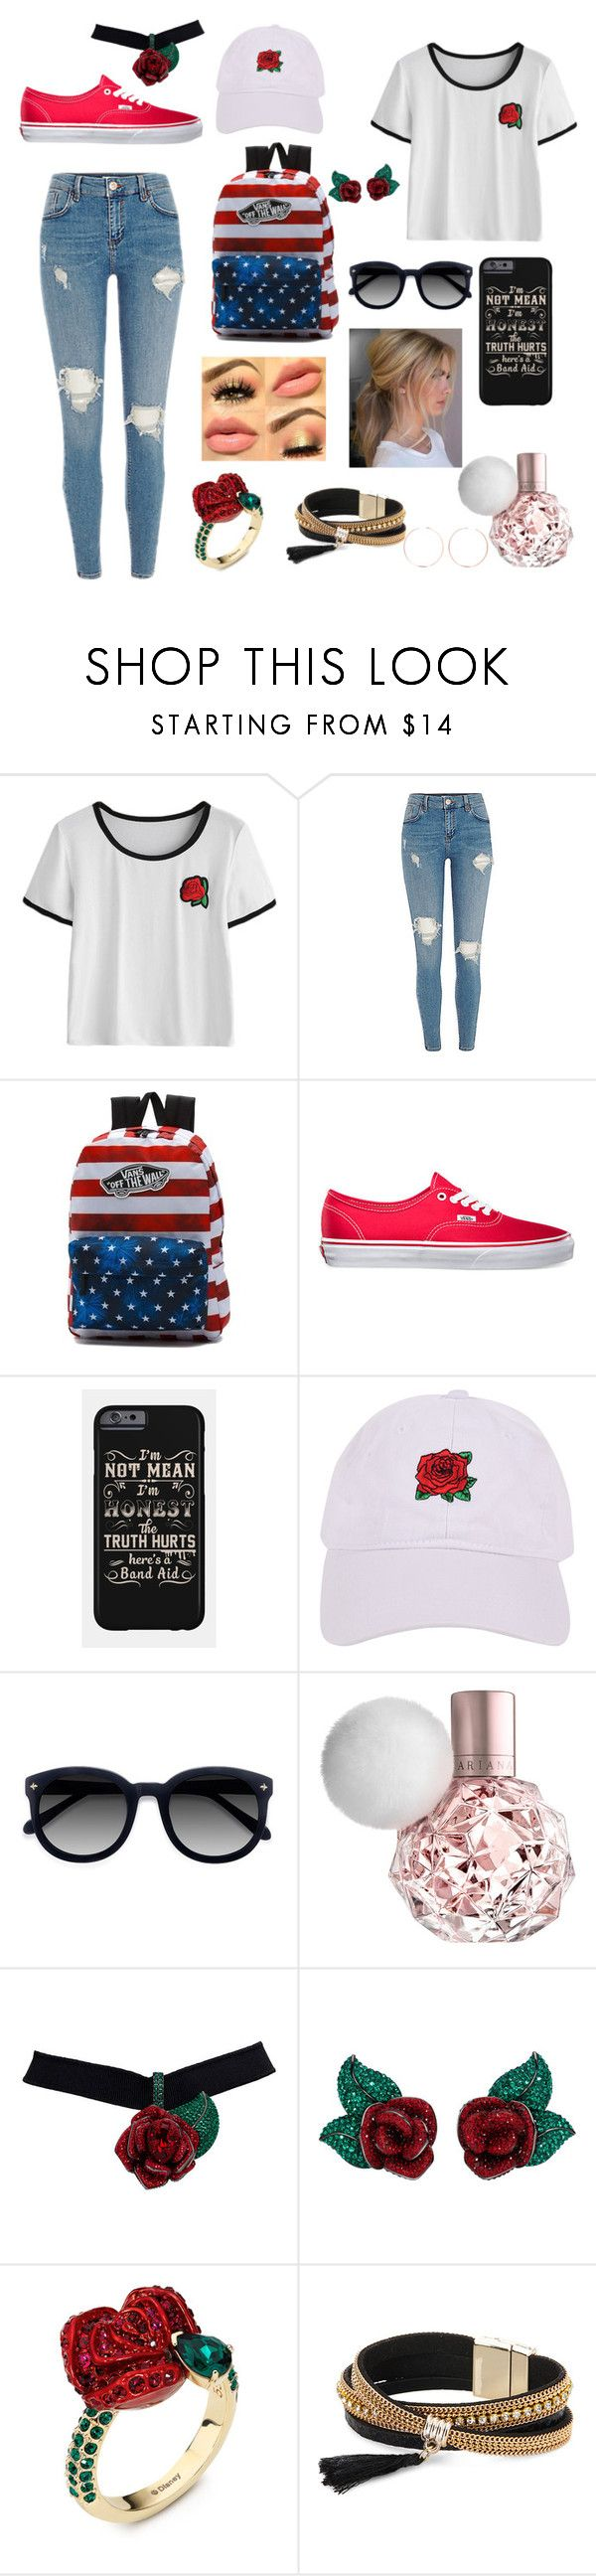 """Rosy cheeks"" by styleparty ❤ liked on Polyvore featuring Vans, Armitage Avenue, Ace, Atelier Swarovski, Simons and Anita Ko"